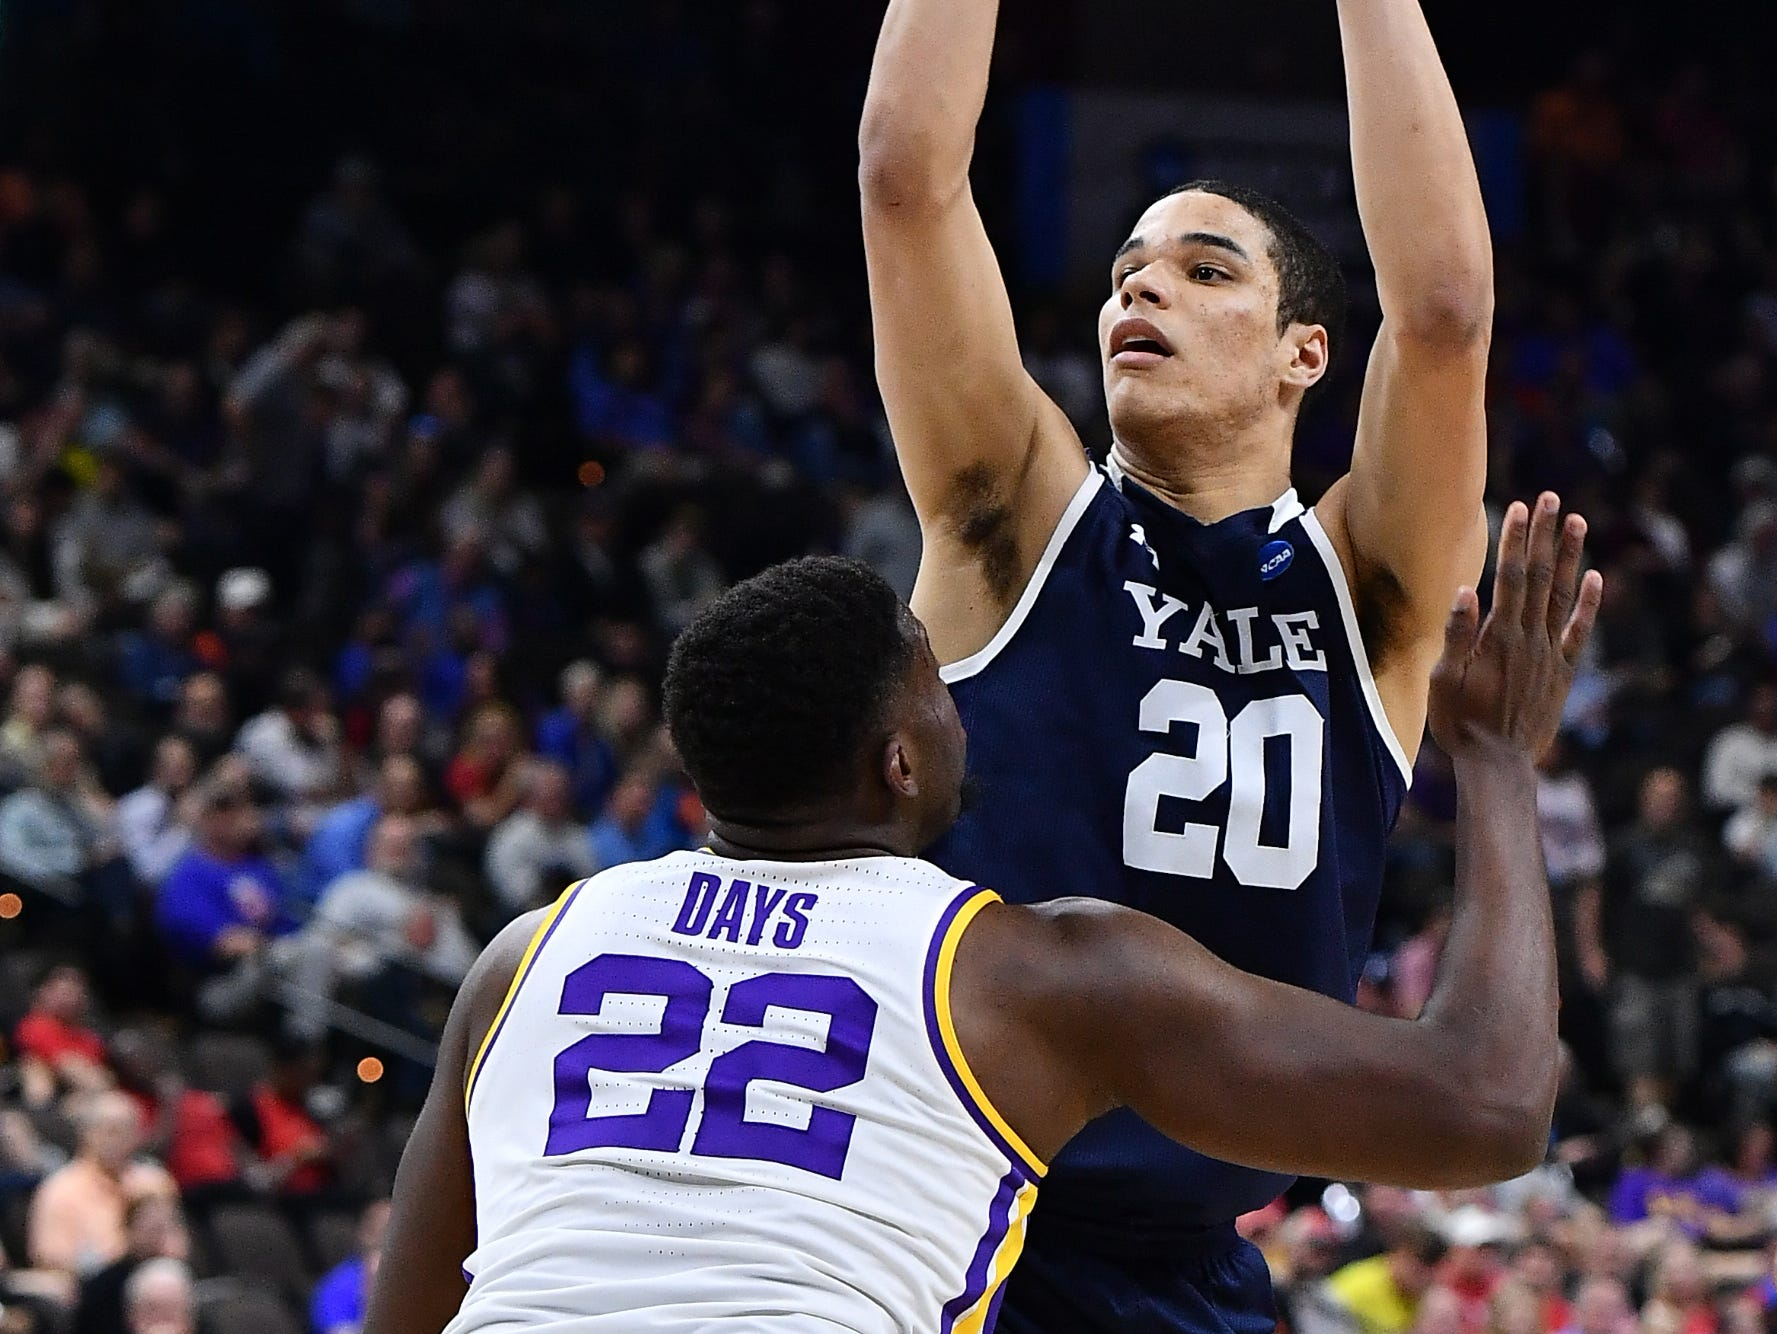 Mar 21, 2019; Jacksonville, FL, USA; Yale Bulldogs forward Paul Atkinson (20) shoots over LSU Tigers forward Darius Days (22) during the second half in the first round of the 2019 NCAA Tournament at Jacksonville Veterans Memorial Arena. Mandatory Credit: John David Mercer-USA TODAY Sports